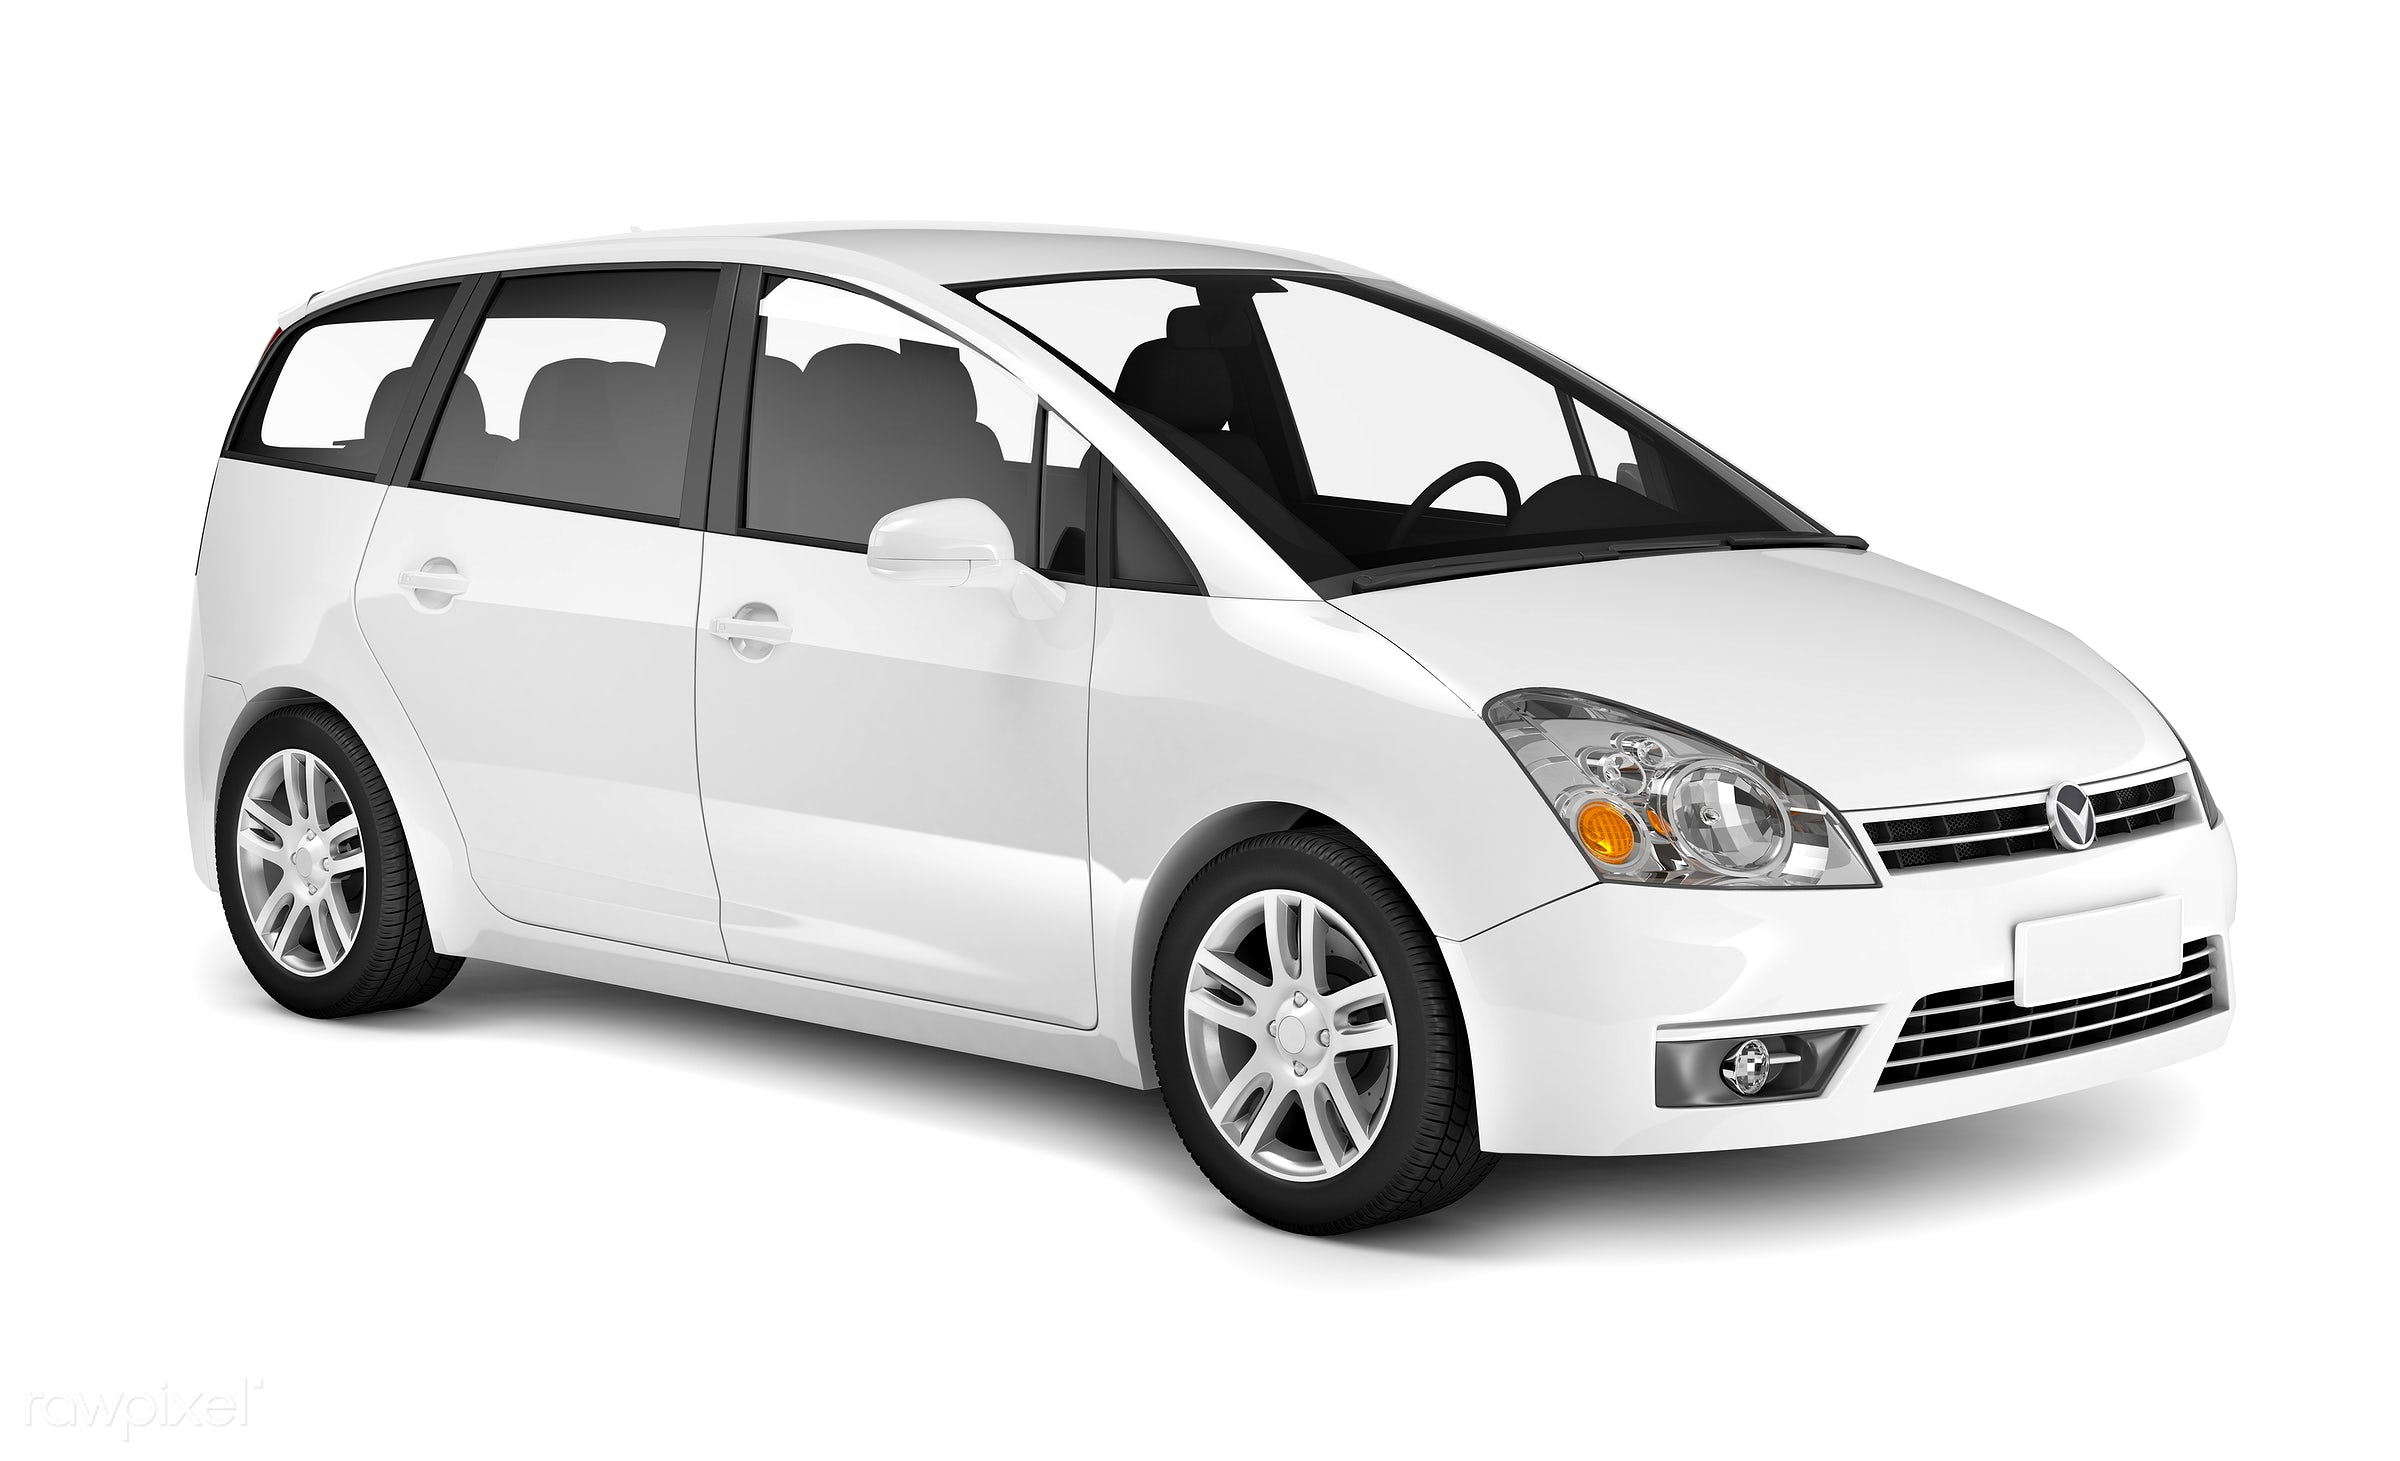 Three dimensional image of car - 3d, automobile, automotive, brandless, car, concept car, graphic, holiday, illustration,...